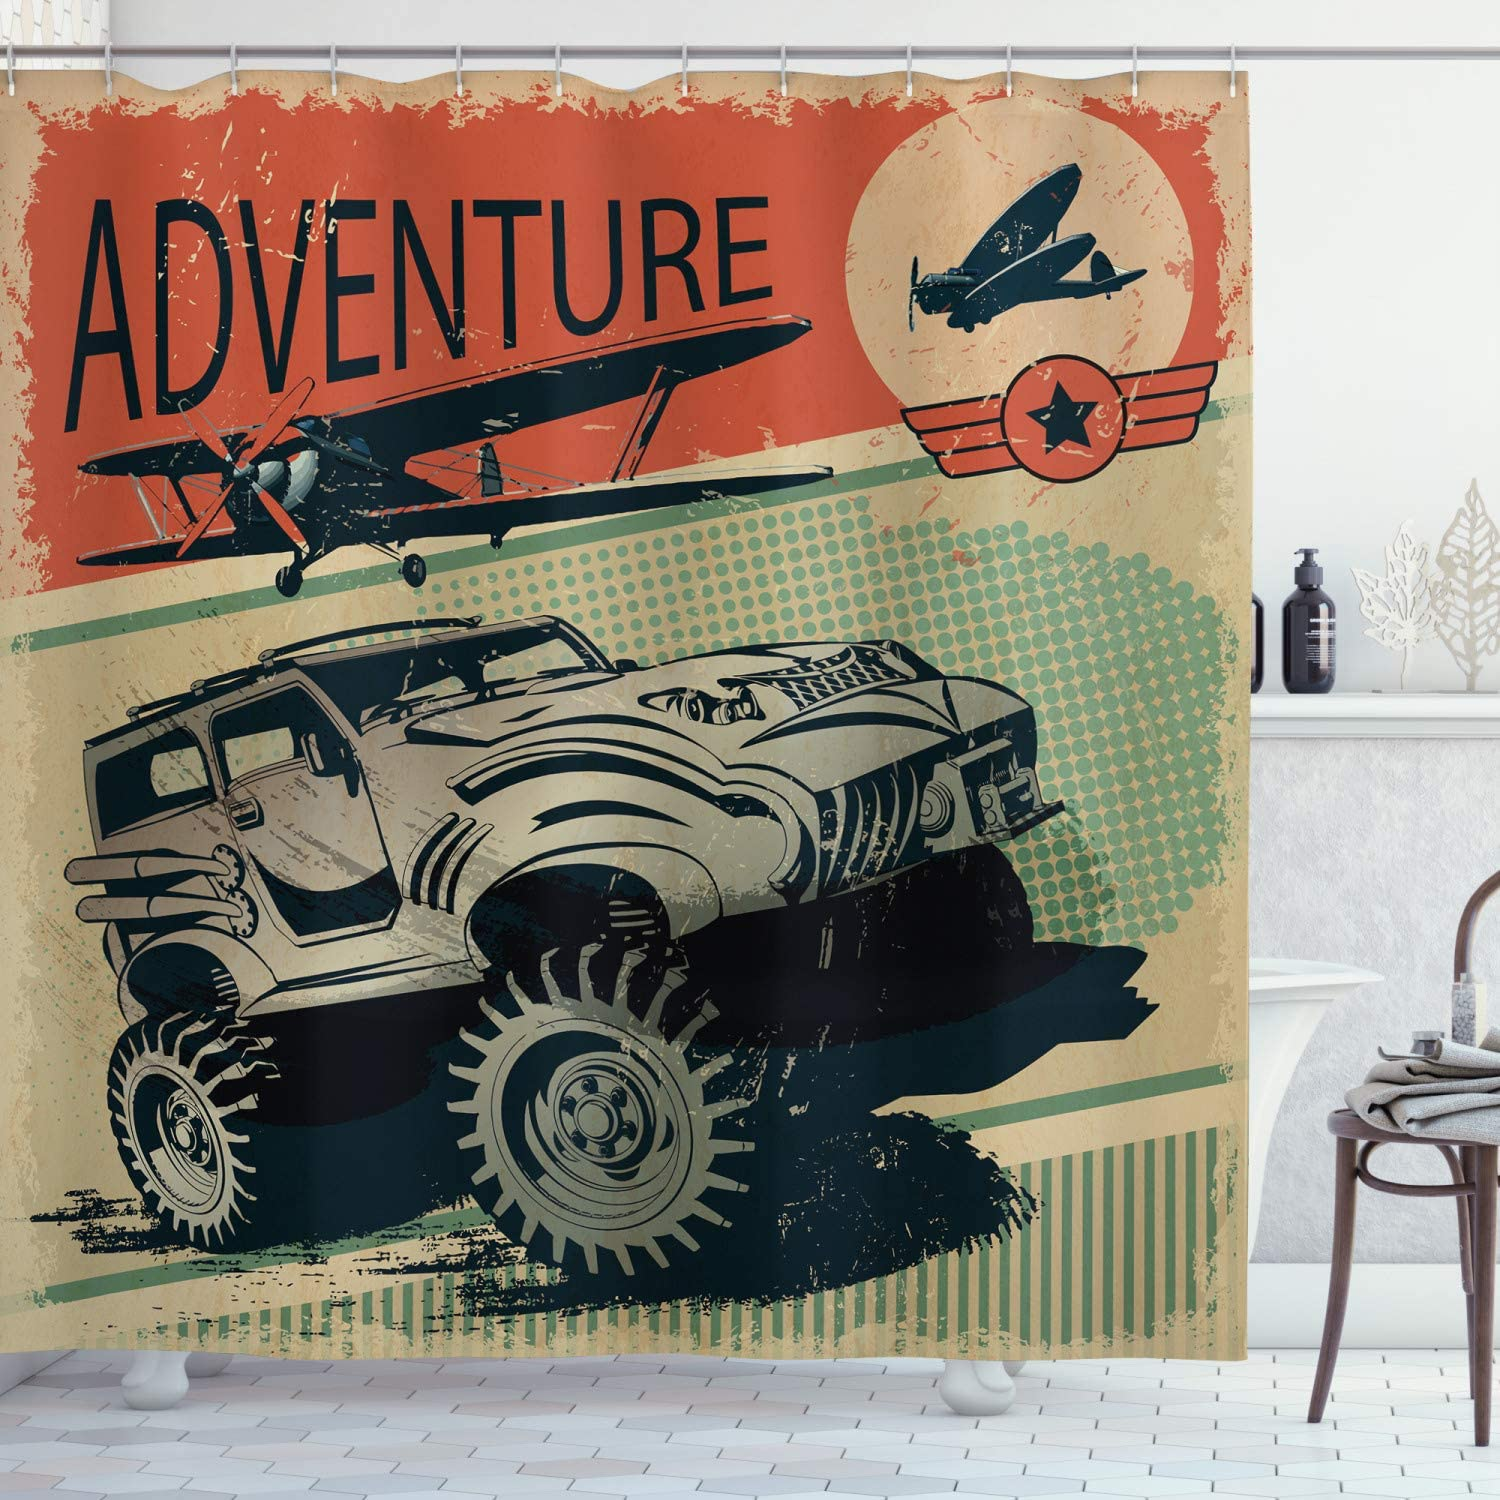 Ambesonne Adventure Shower Curtain, Aged Damaged Display with Retro Elements Strong Vehicle and Airplanes Print, Cloth Fabric Bathroom Decor Set with Hooks, 70